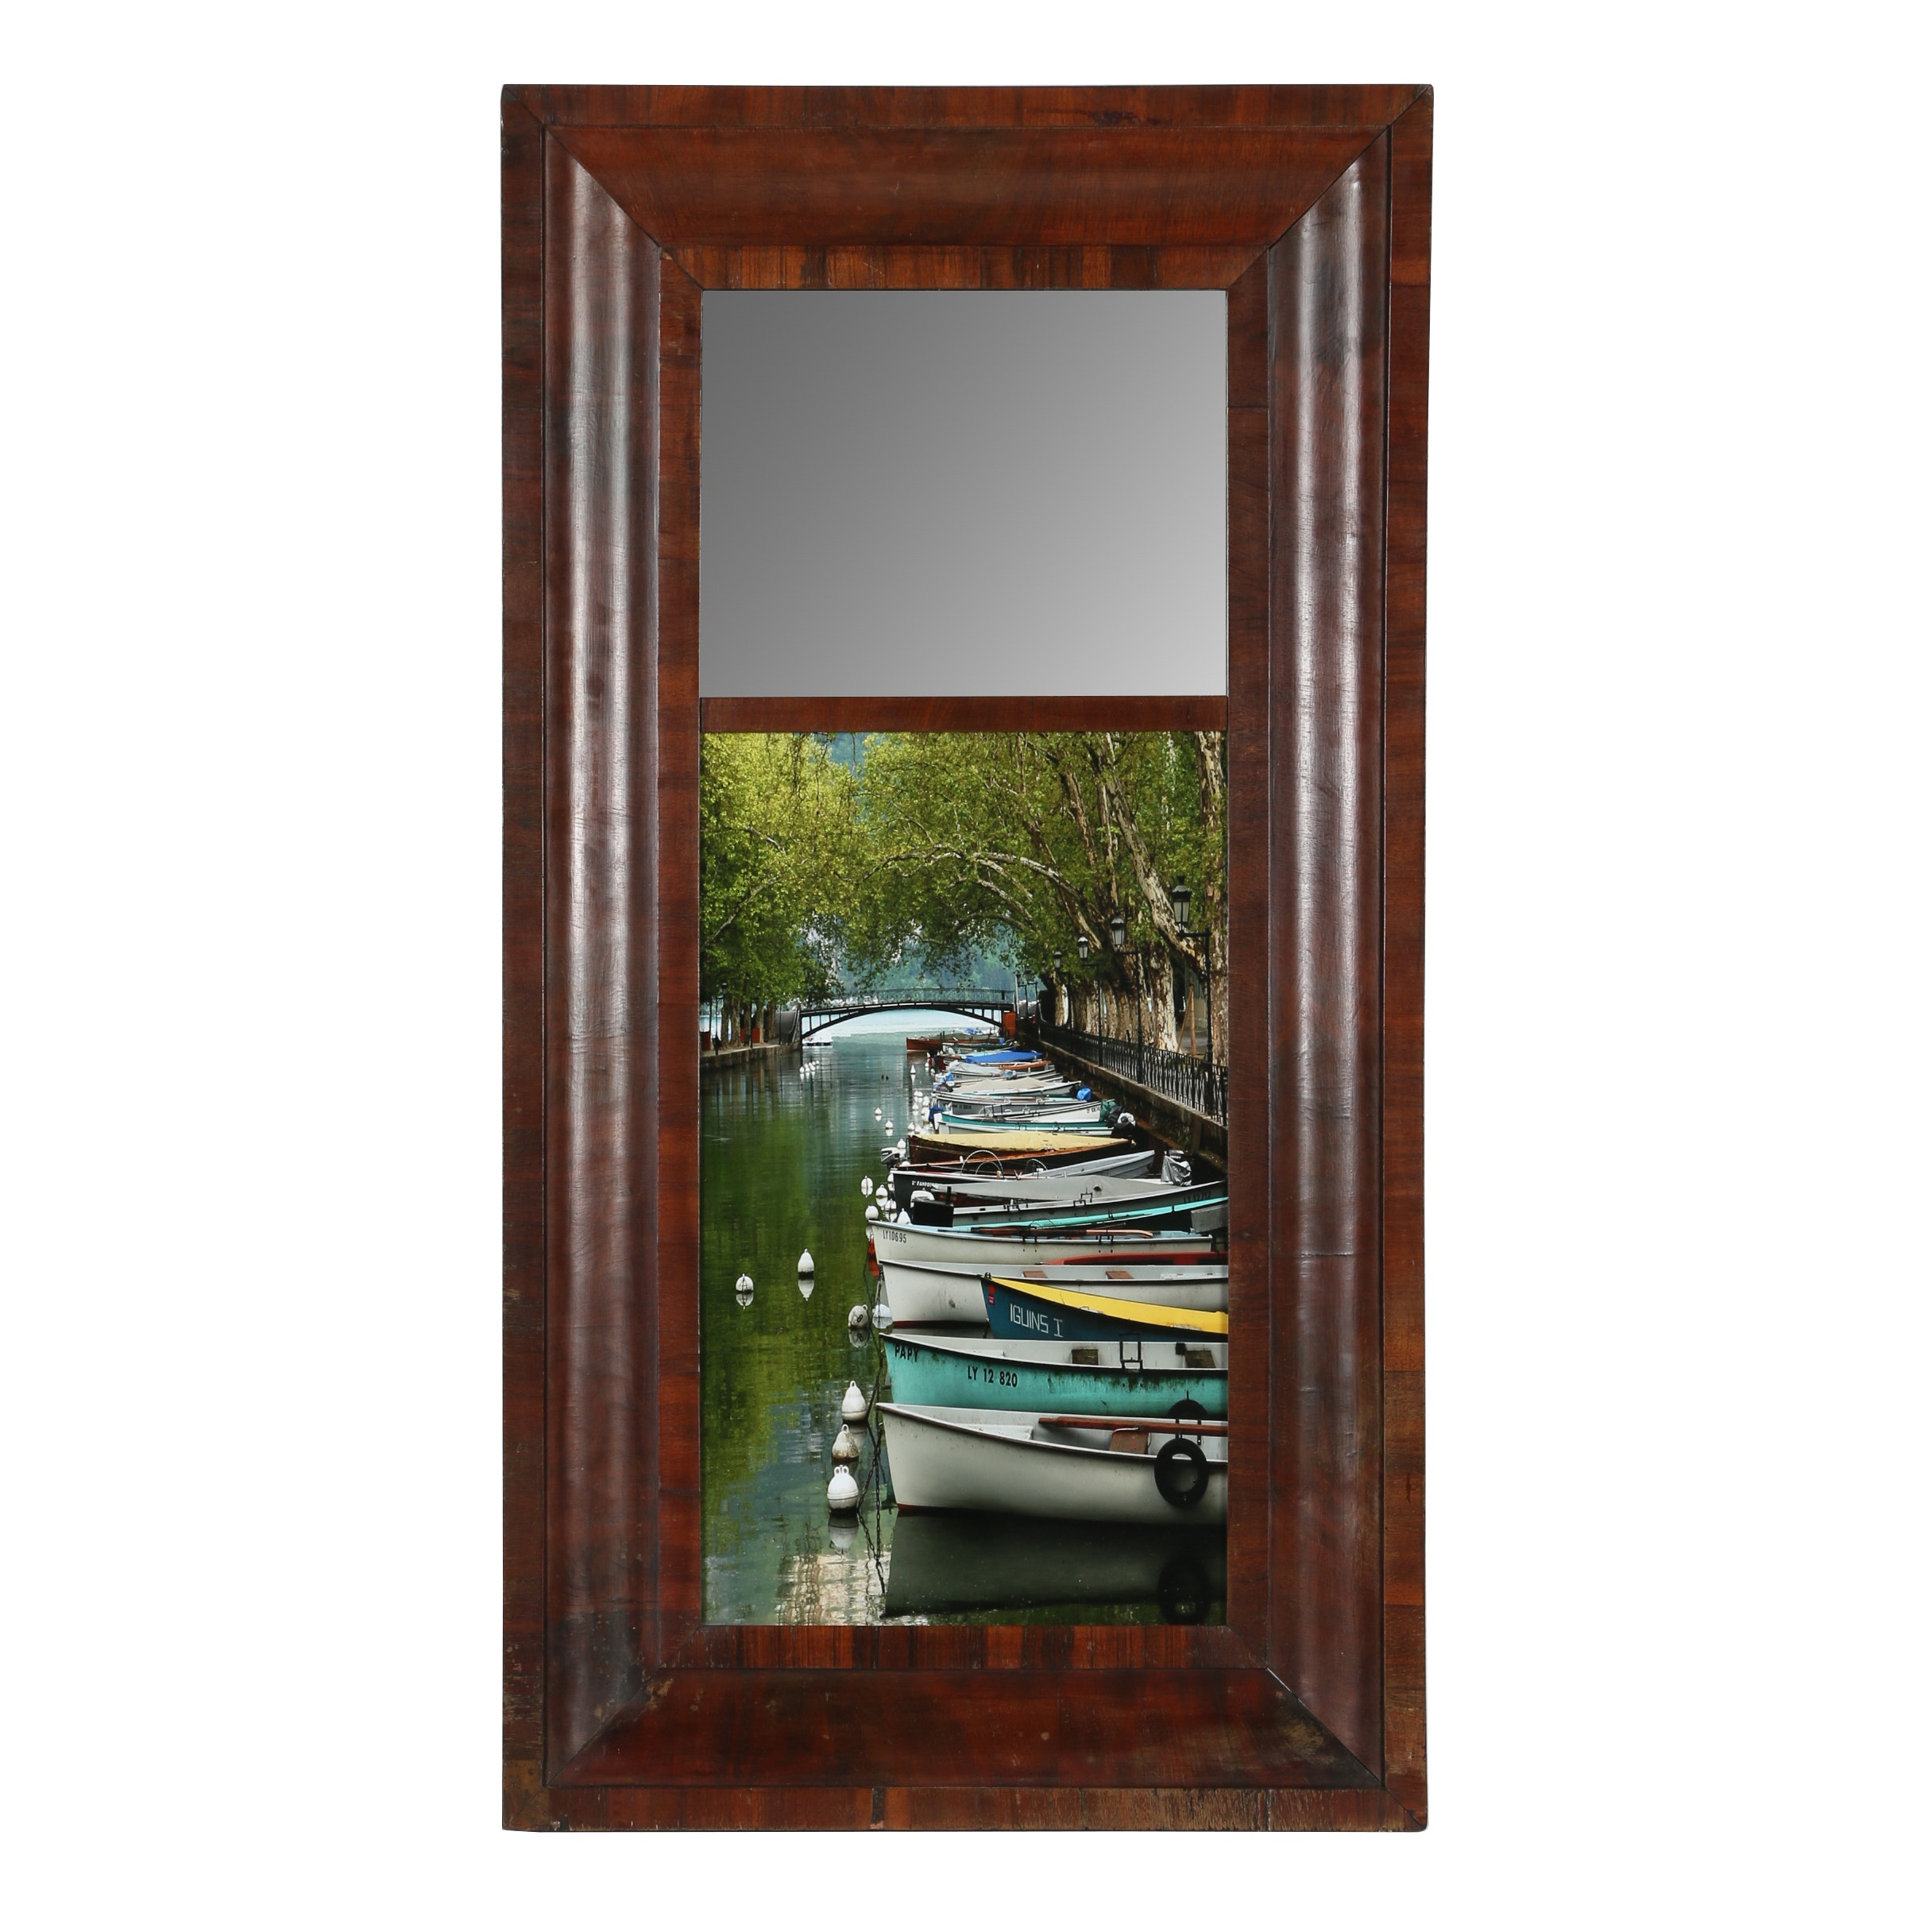 Dan Albright Boat Giclée with Mirror in a Wood Frame